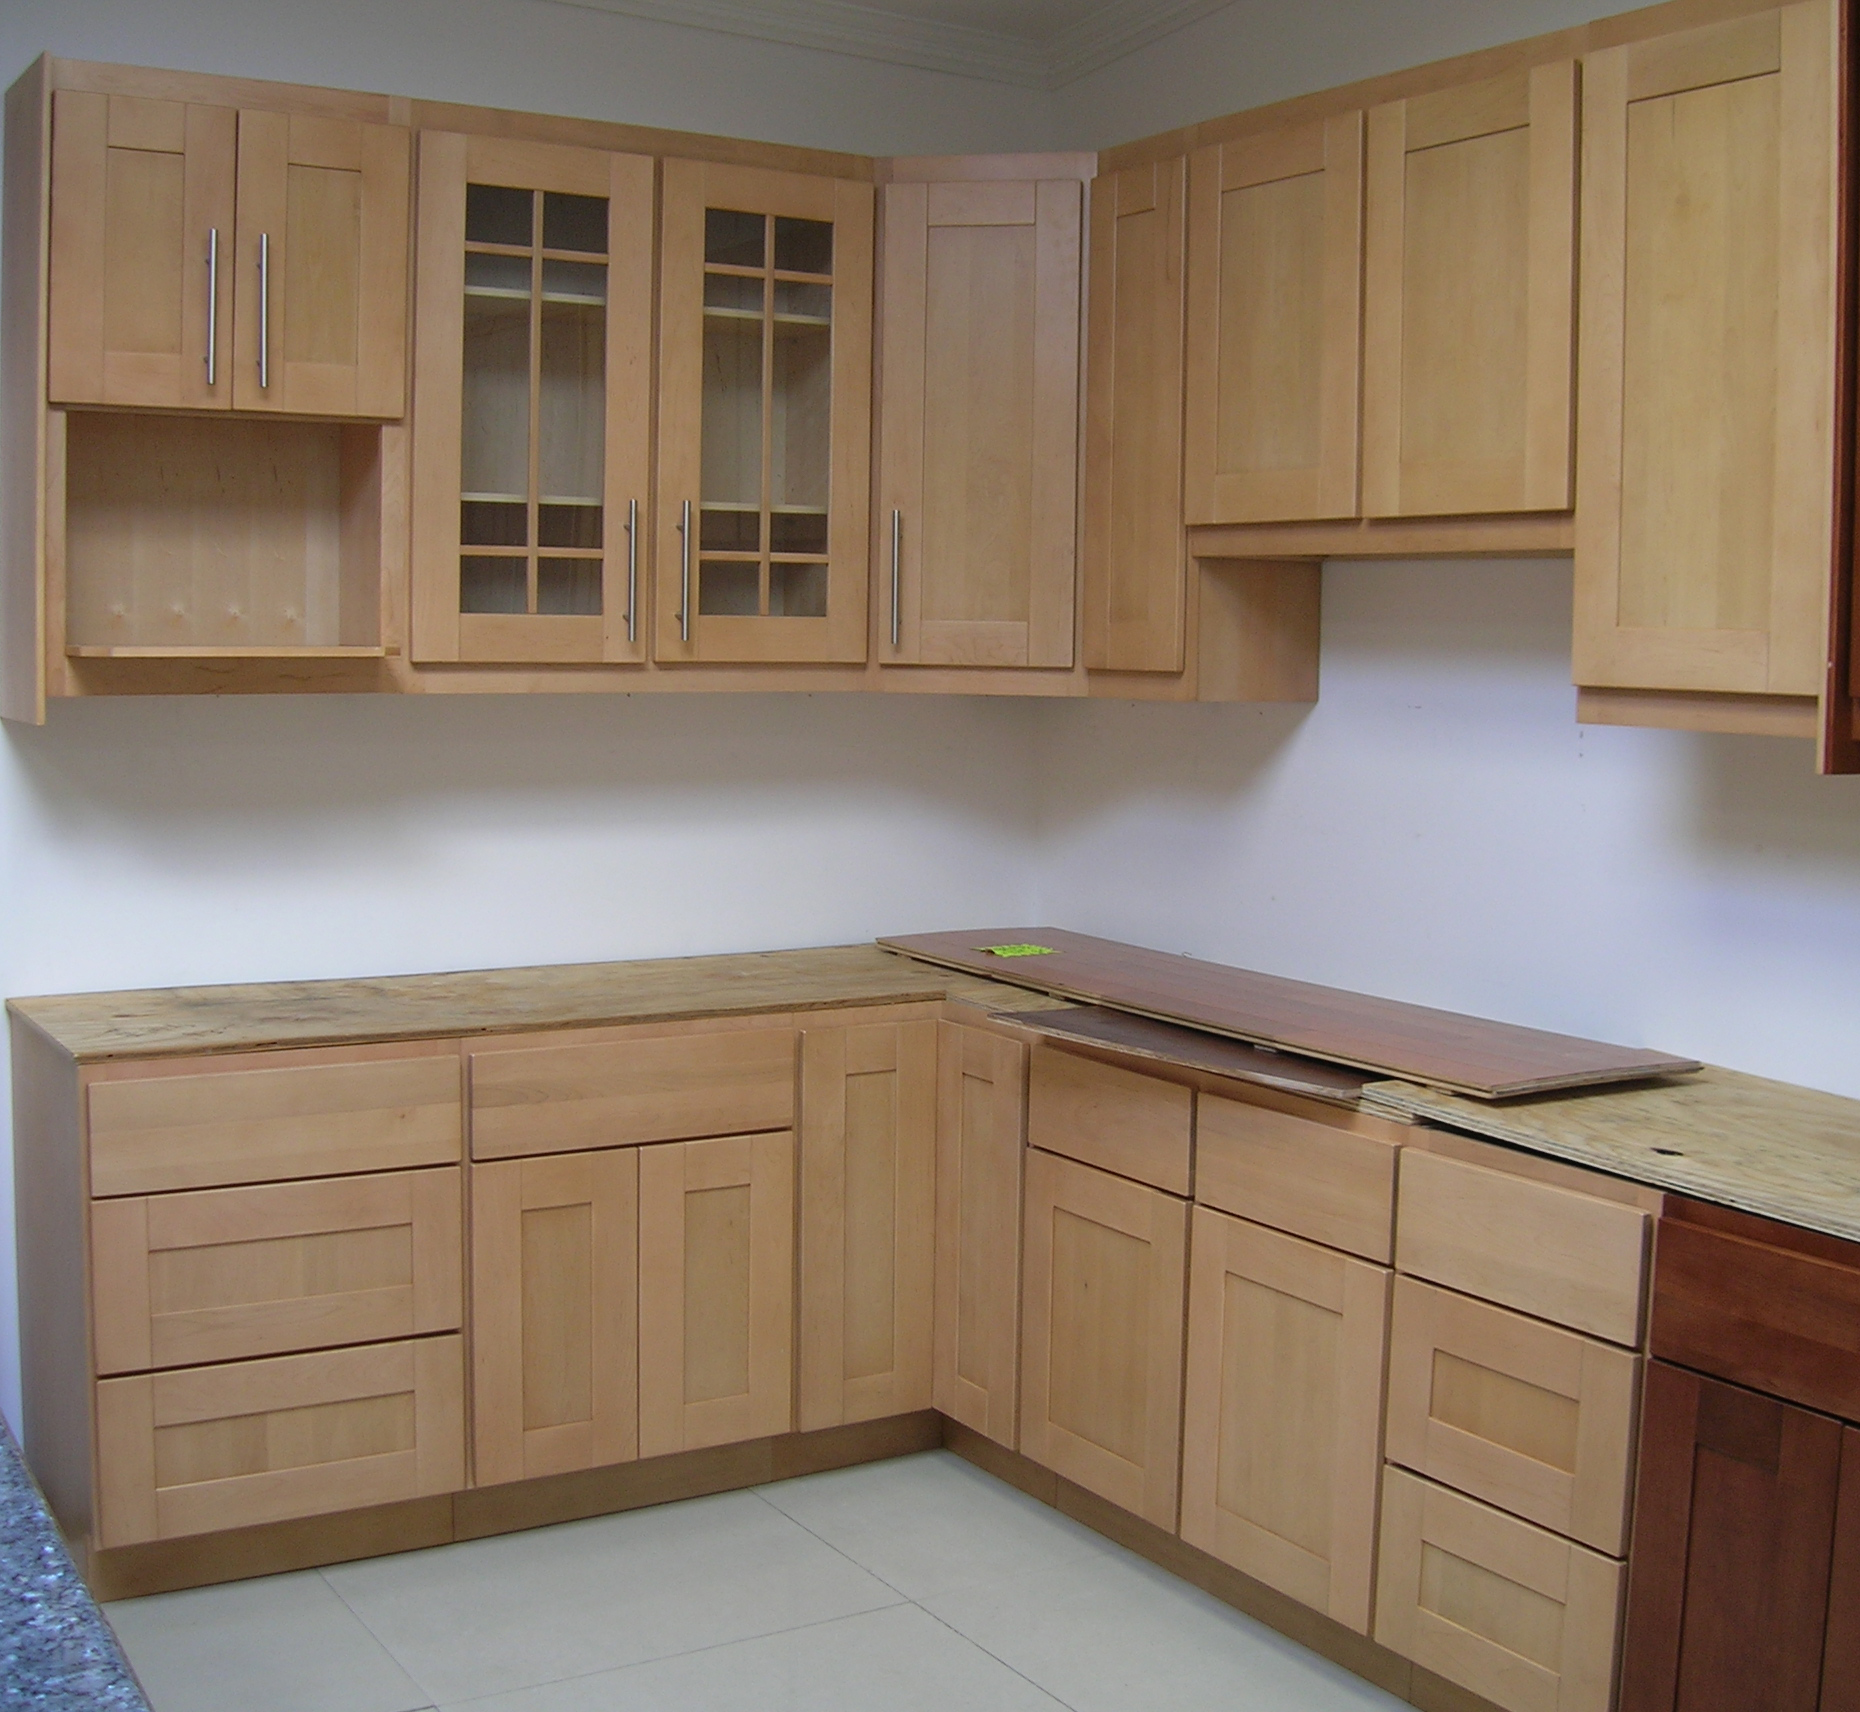 Contemporary kitchen cabinets wholesale priced kitchen for Shaker kitchen cabinets